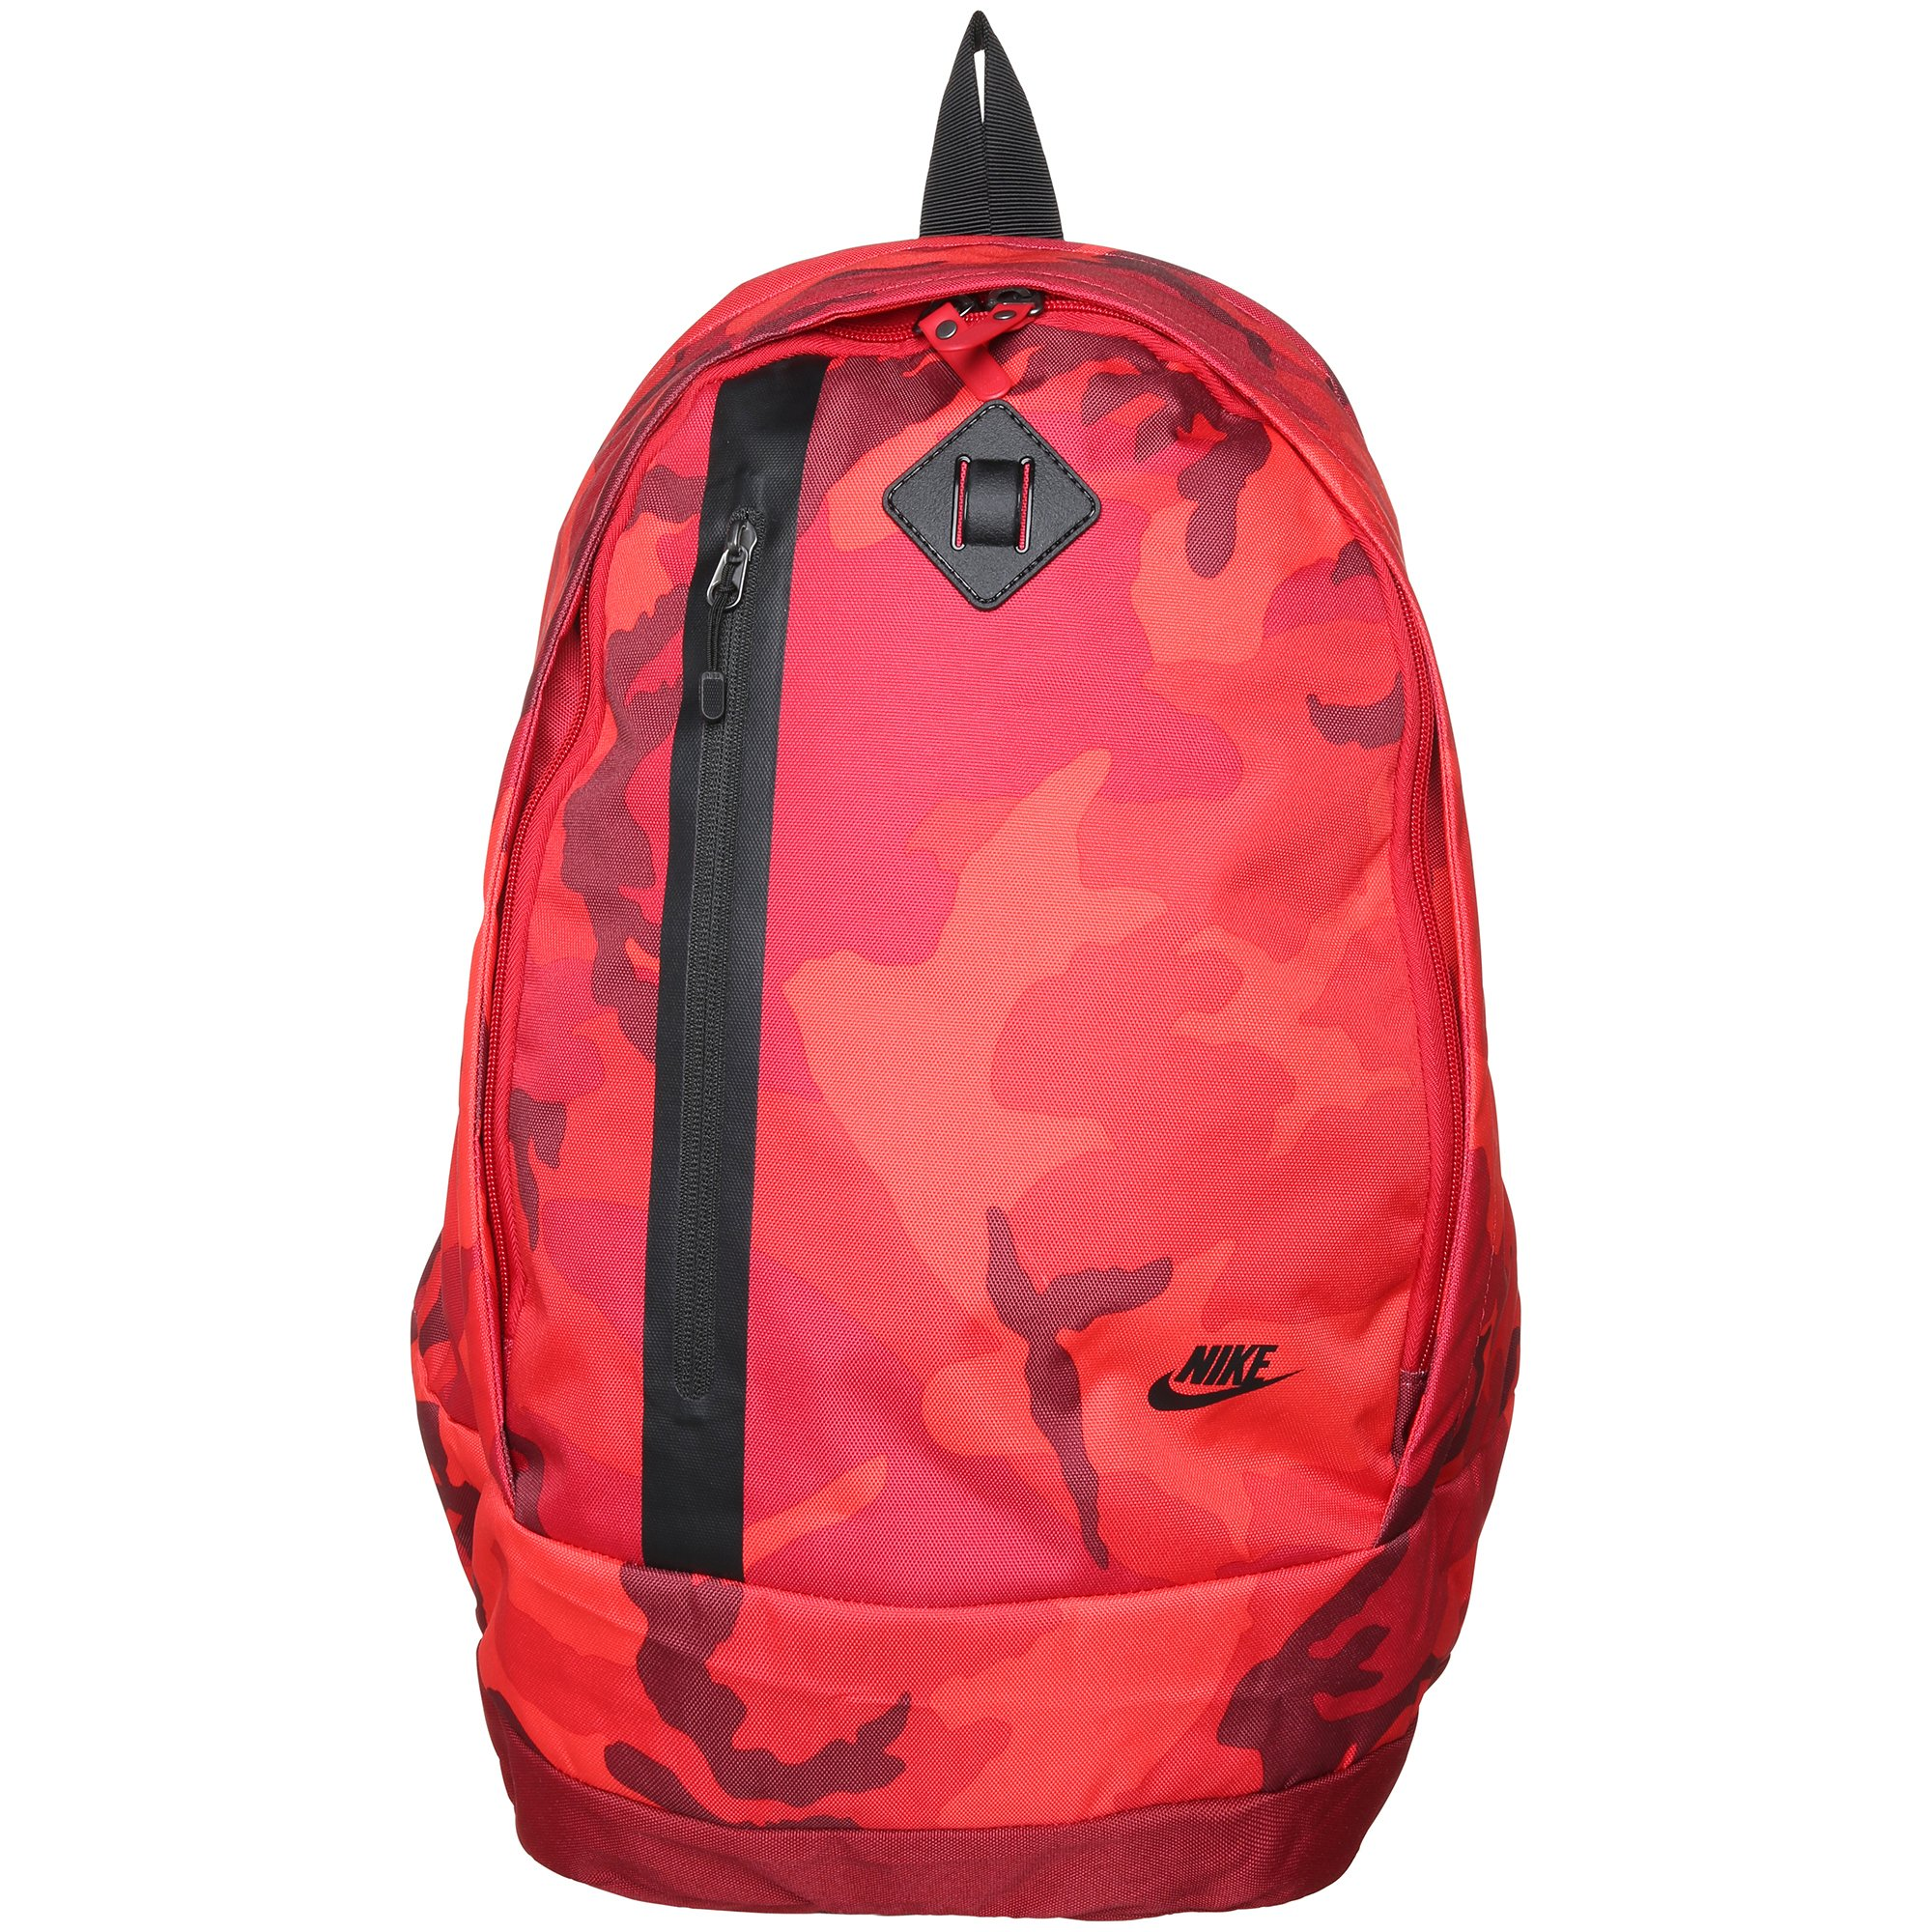 a2471f8d24fa Nike Black Red Backpack- Fenix Toulouse Handball